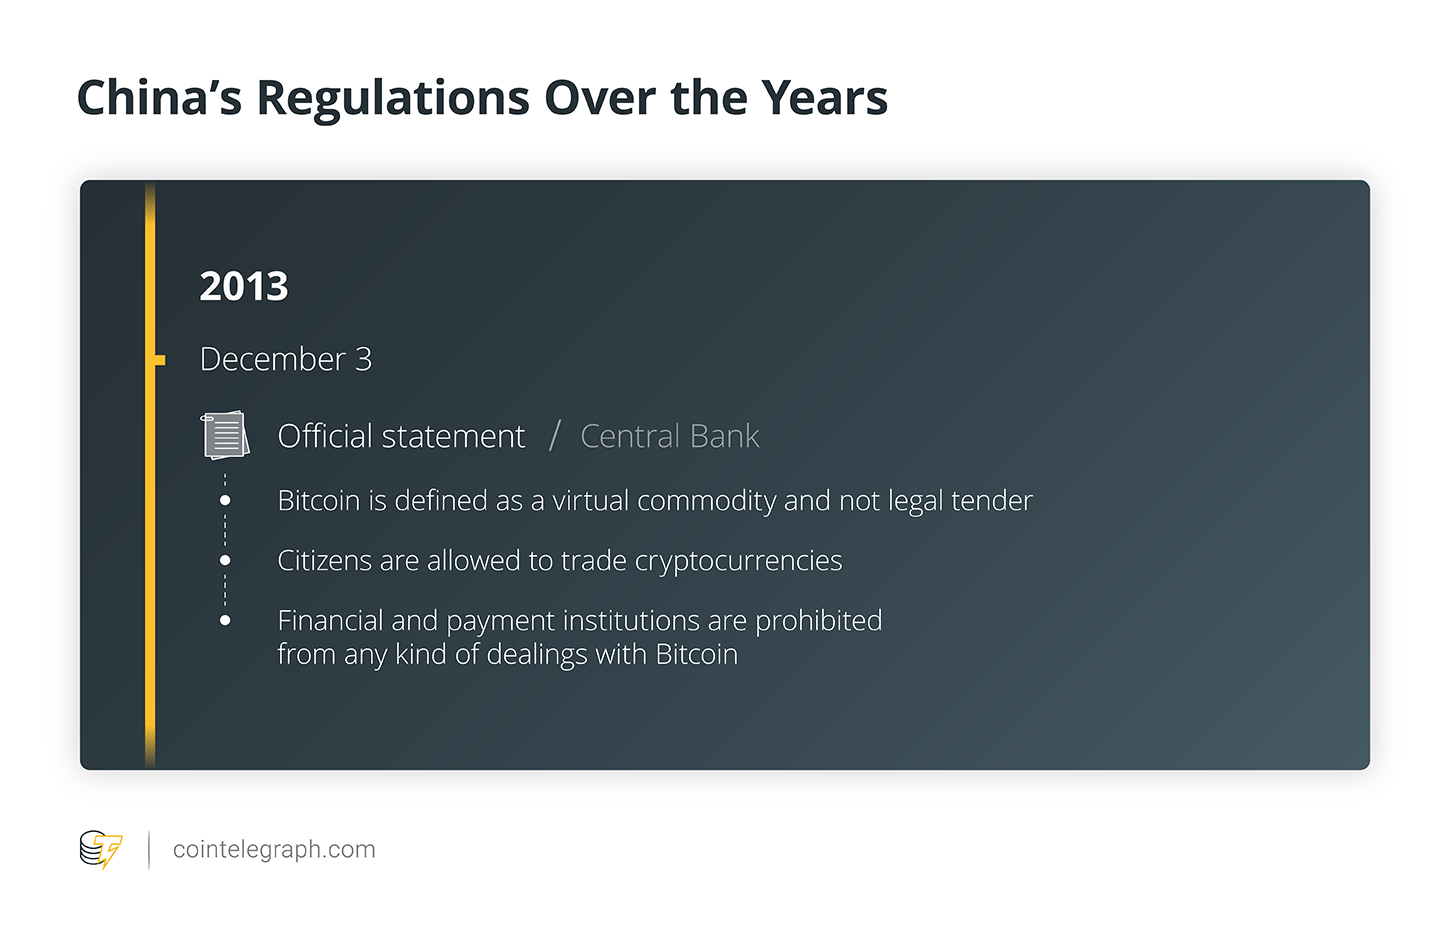 2013: Restrictions on financial institutions' Bitcoin dealings, stark warnings about financial stability threats, but a hands-off approach to crypto trading